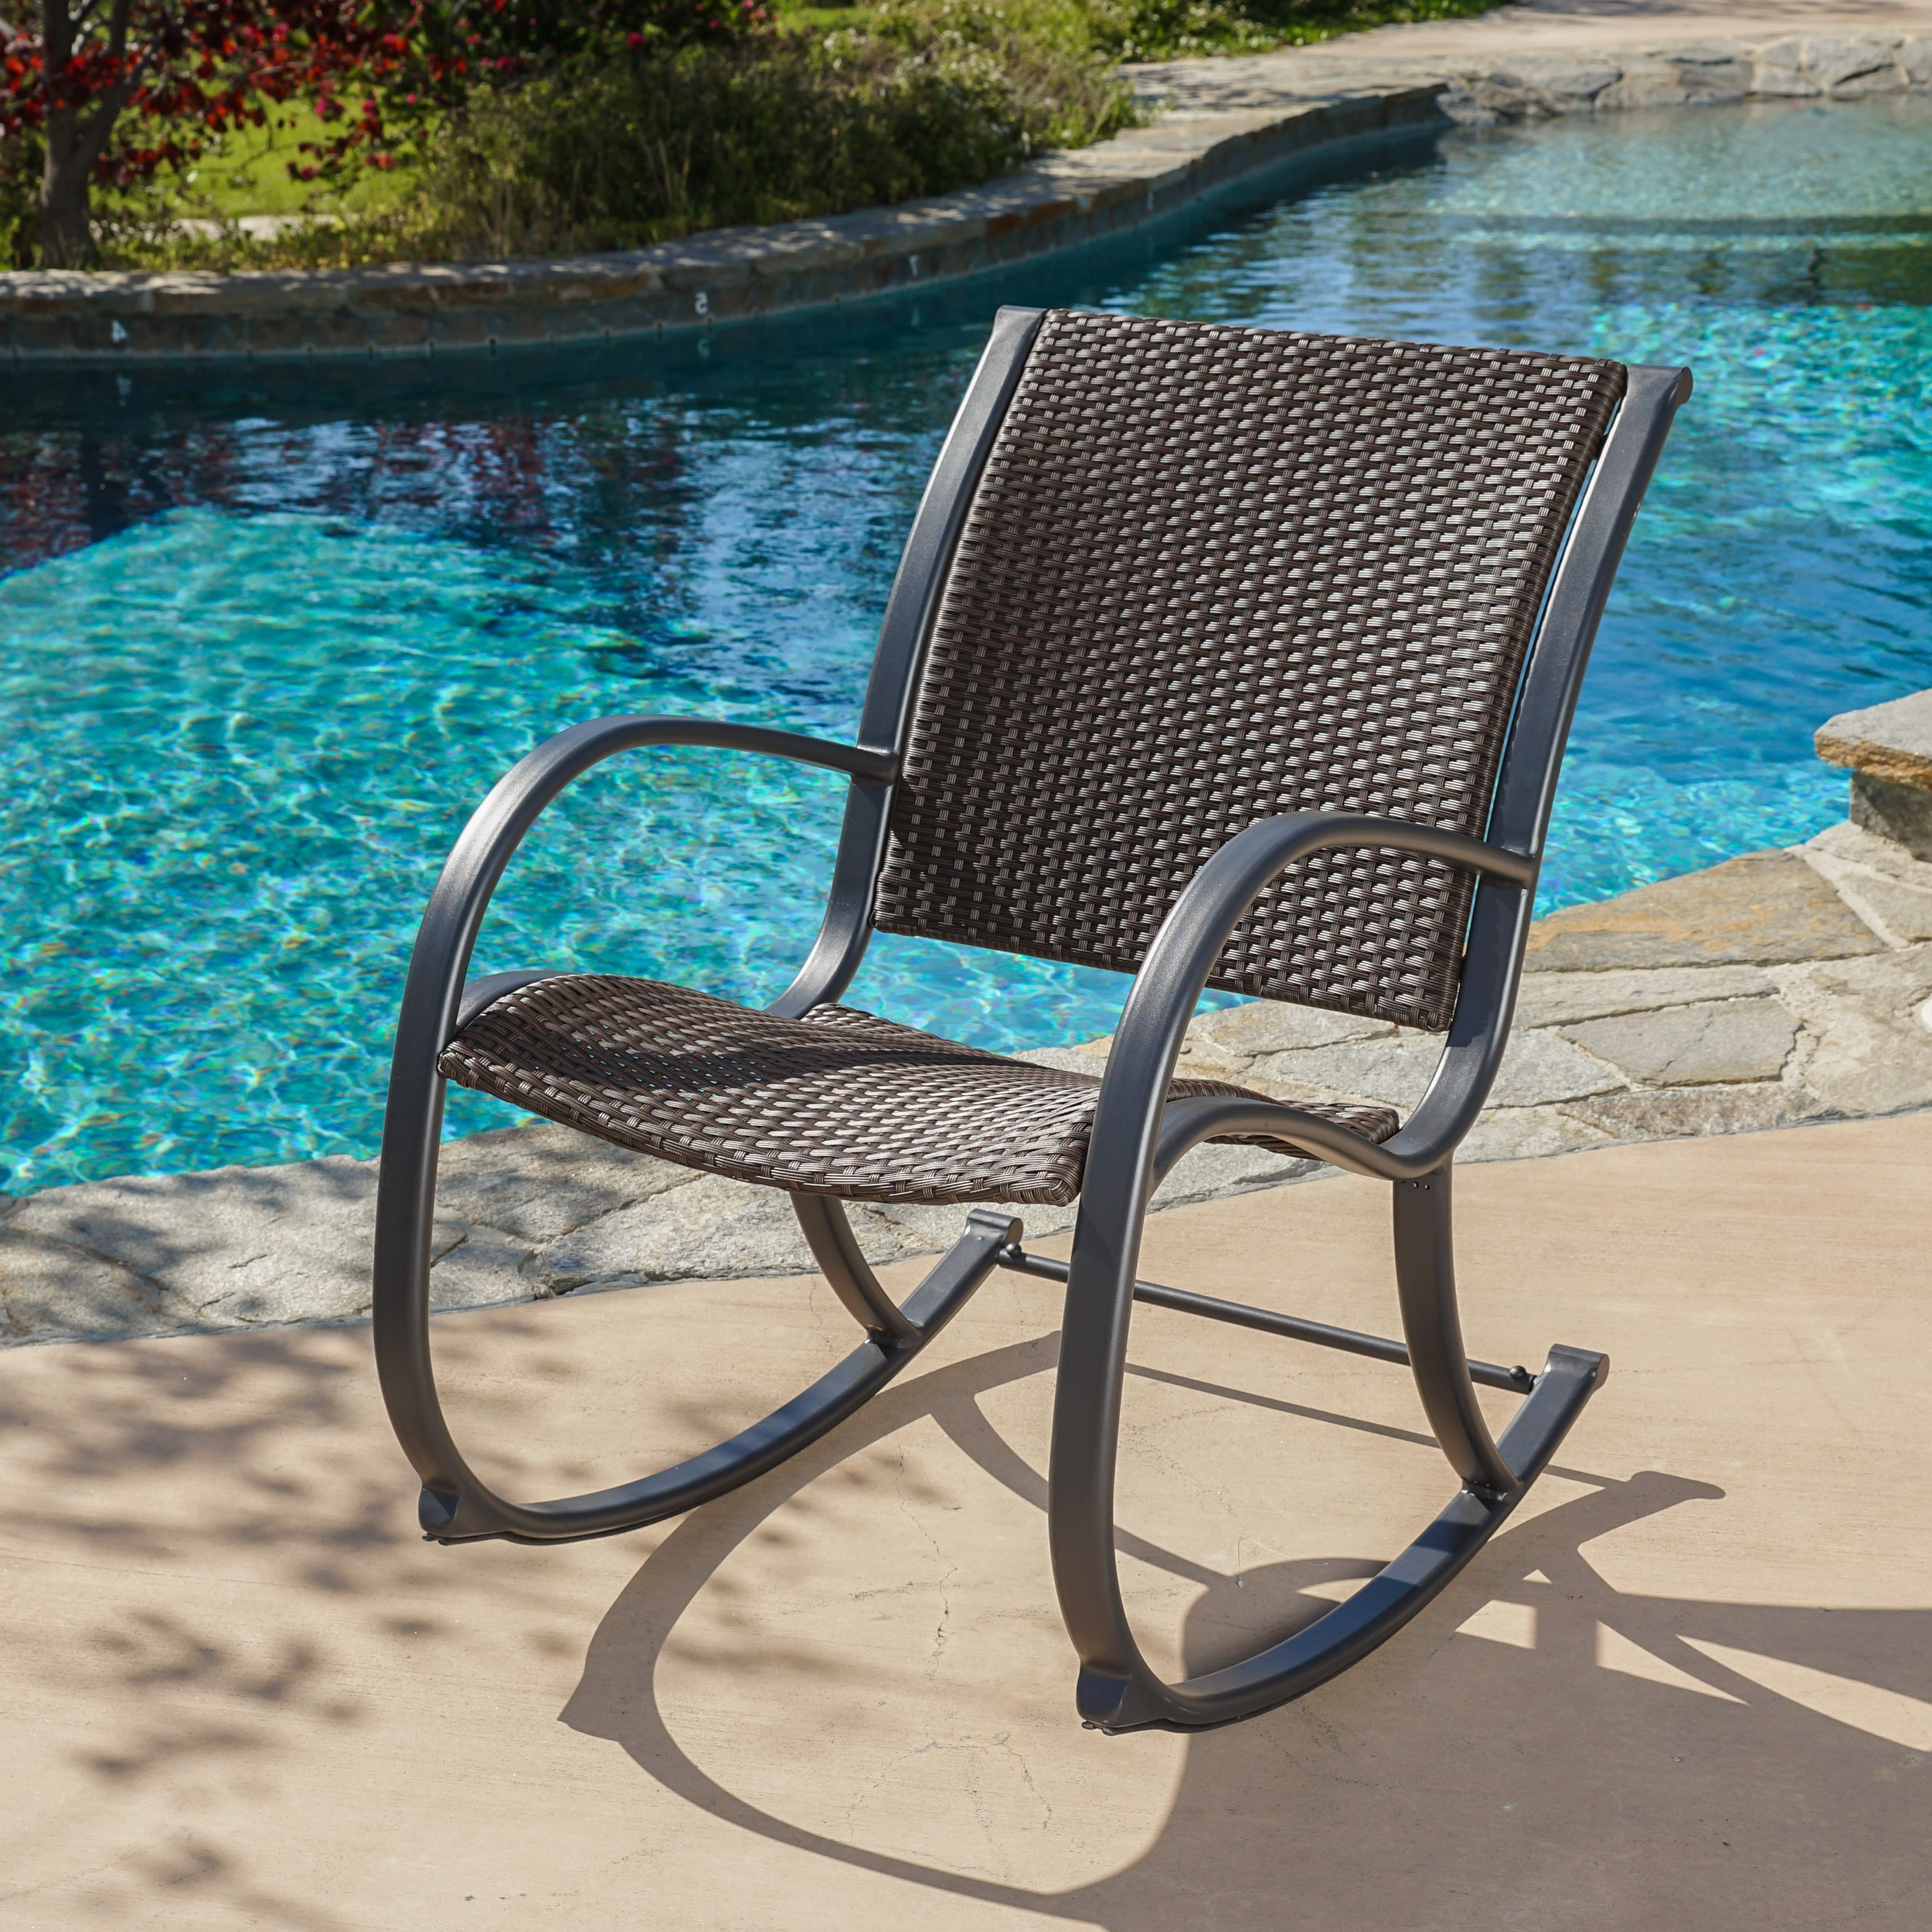 Rattan Outdoor Rocking Chairs Within Latest Shop Gracie's Outdoor Wicker Rocking Chairchristopher Knight (View 9 of 15)